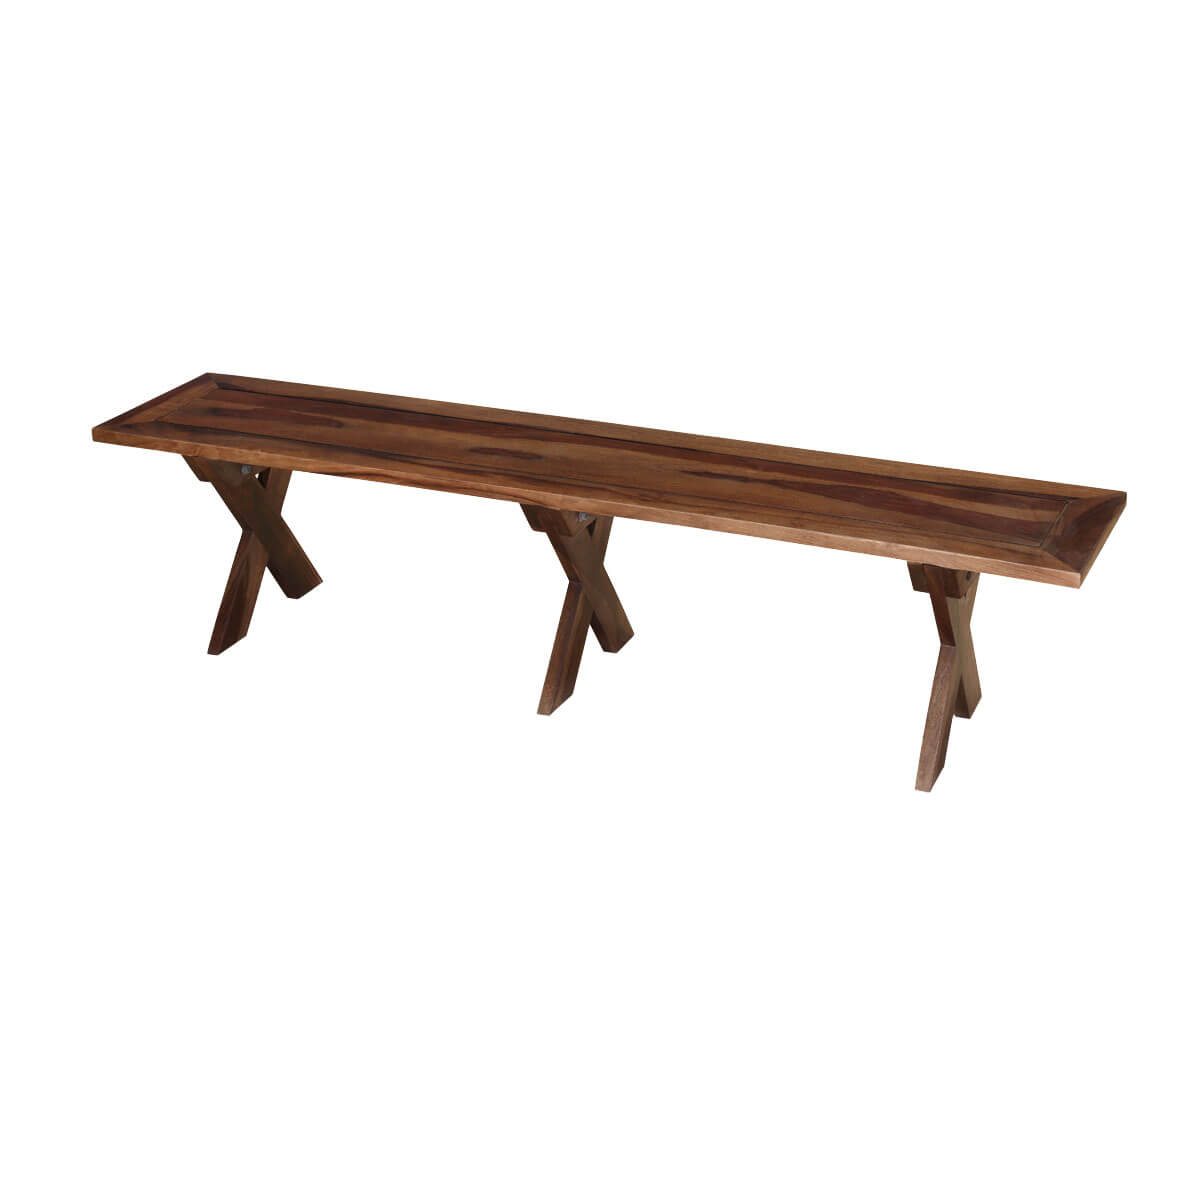 Traditional American Solid Wood Picnic Style Dining Bench